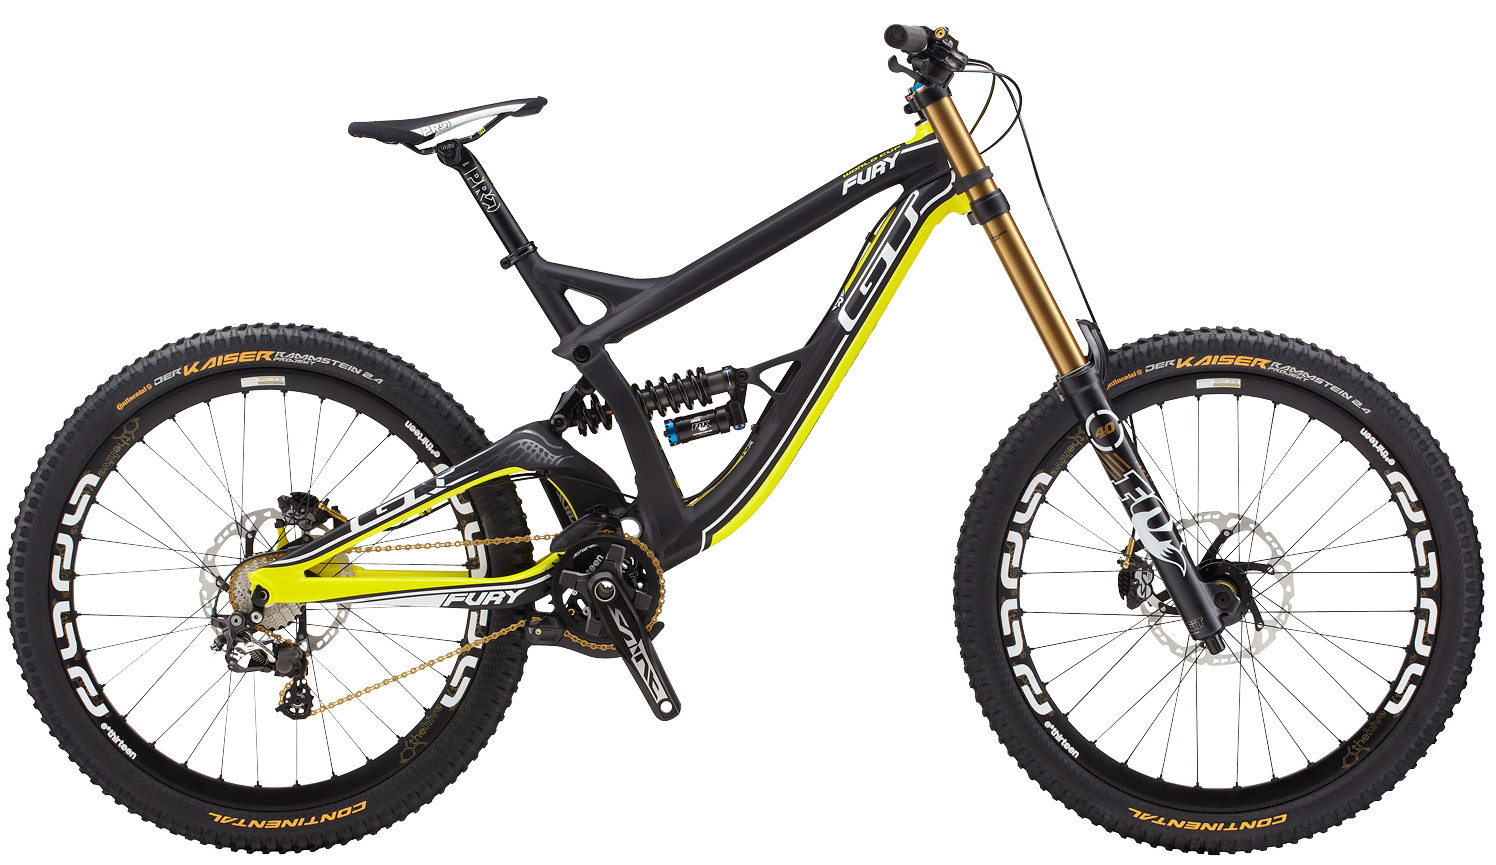 2014 GT Fury World Cup Bike G14_26M_Fury_WorldCup_BLK_1